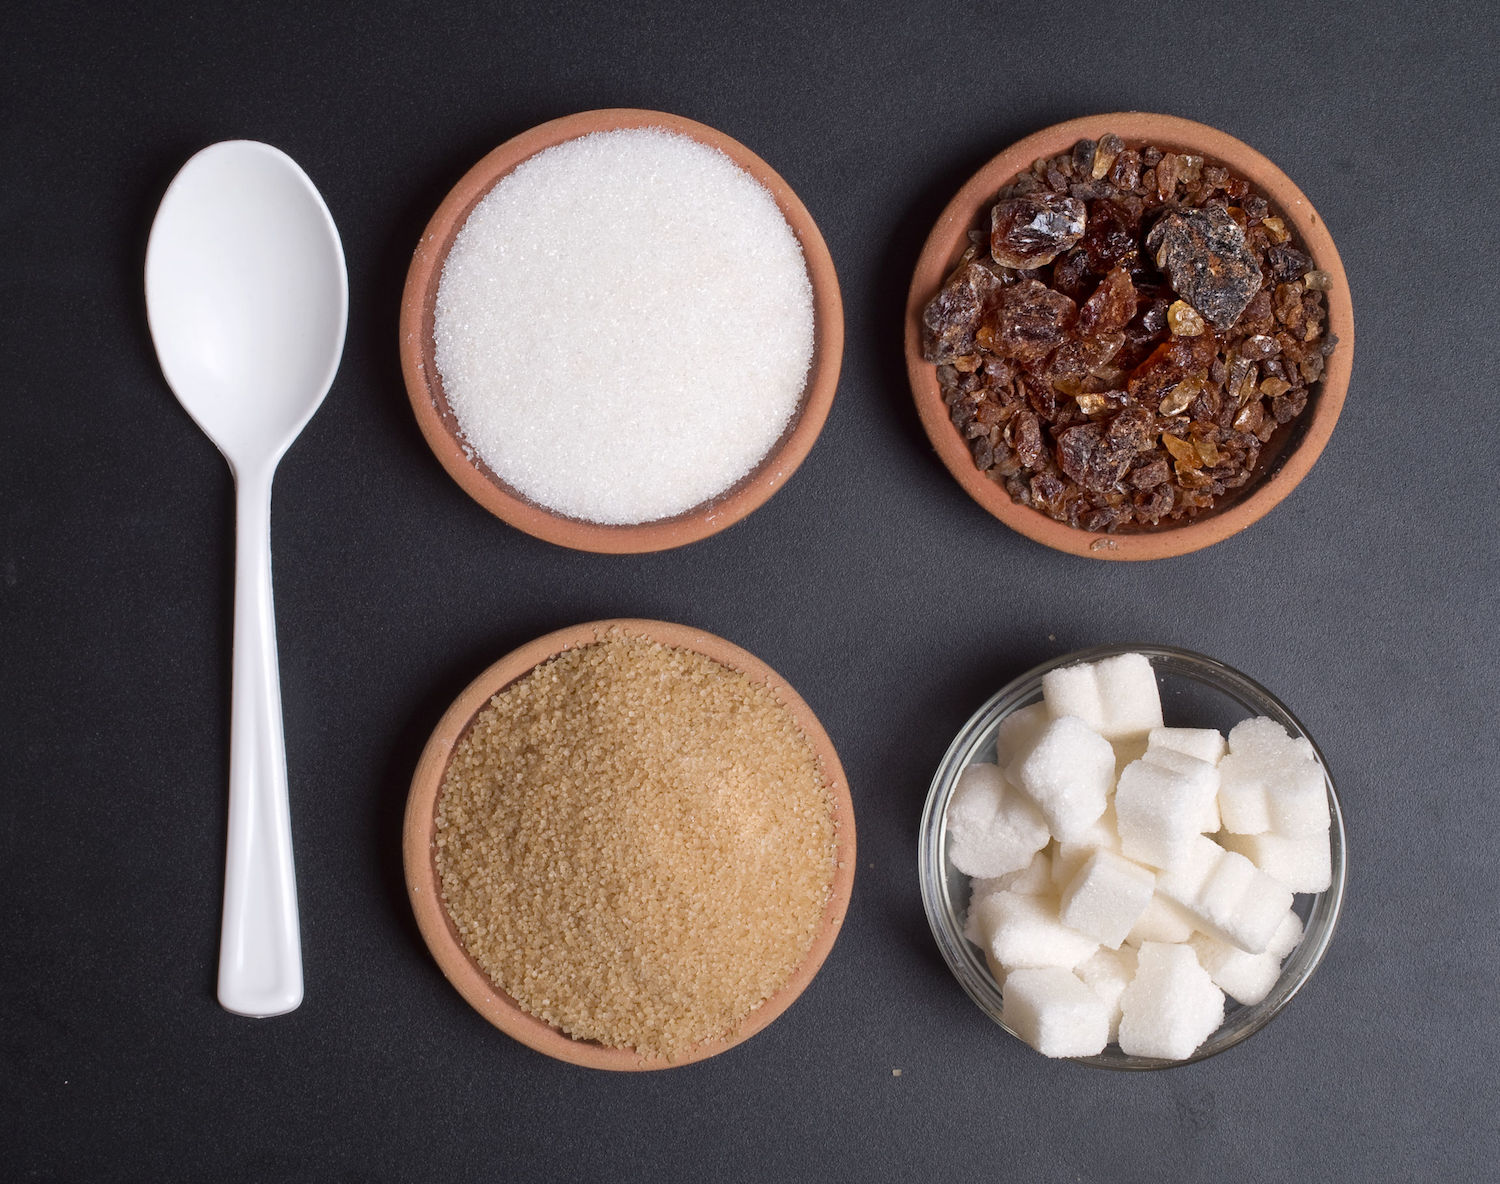 how many grams of sugar should you have a day?